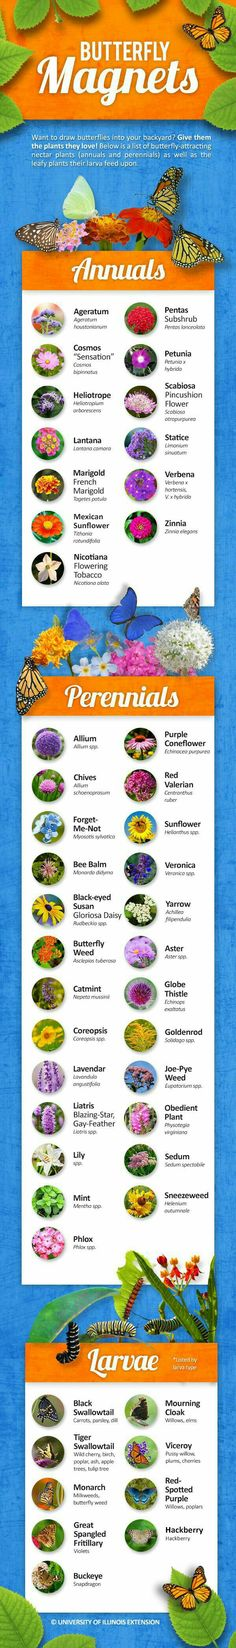 butterfly garden UPDATED Infographic: Want more butterflies in your yard Plant the nectar plants they love! Heres a great list of butterfly-attracting annual and perennial plants including those needed for butterfly larvae. Outdoor Plants, Outdoor Gardens, Container Gardening, Gardening Tips, Gardening Services, Urban Gardening, Butterfly Plants, Butterfly Feeder, Diy Butterfly